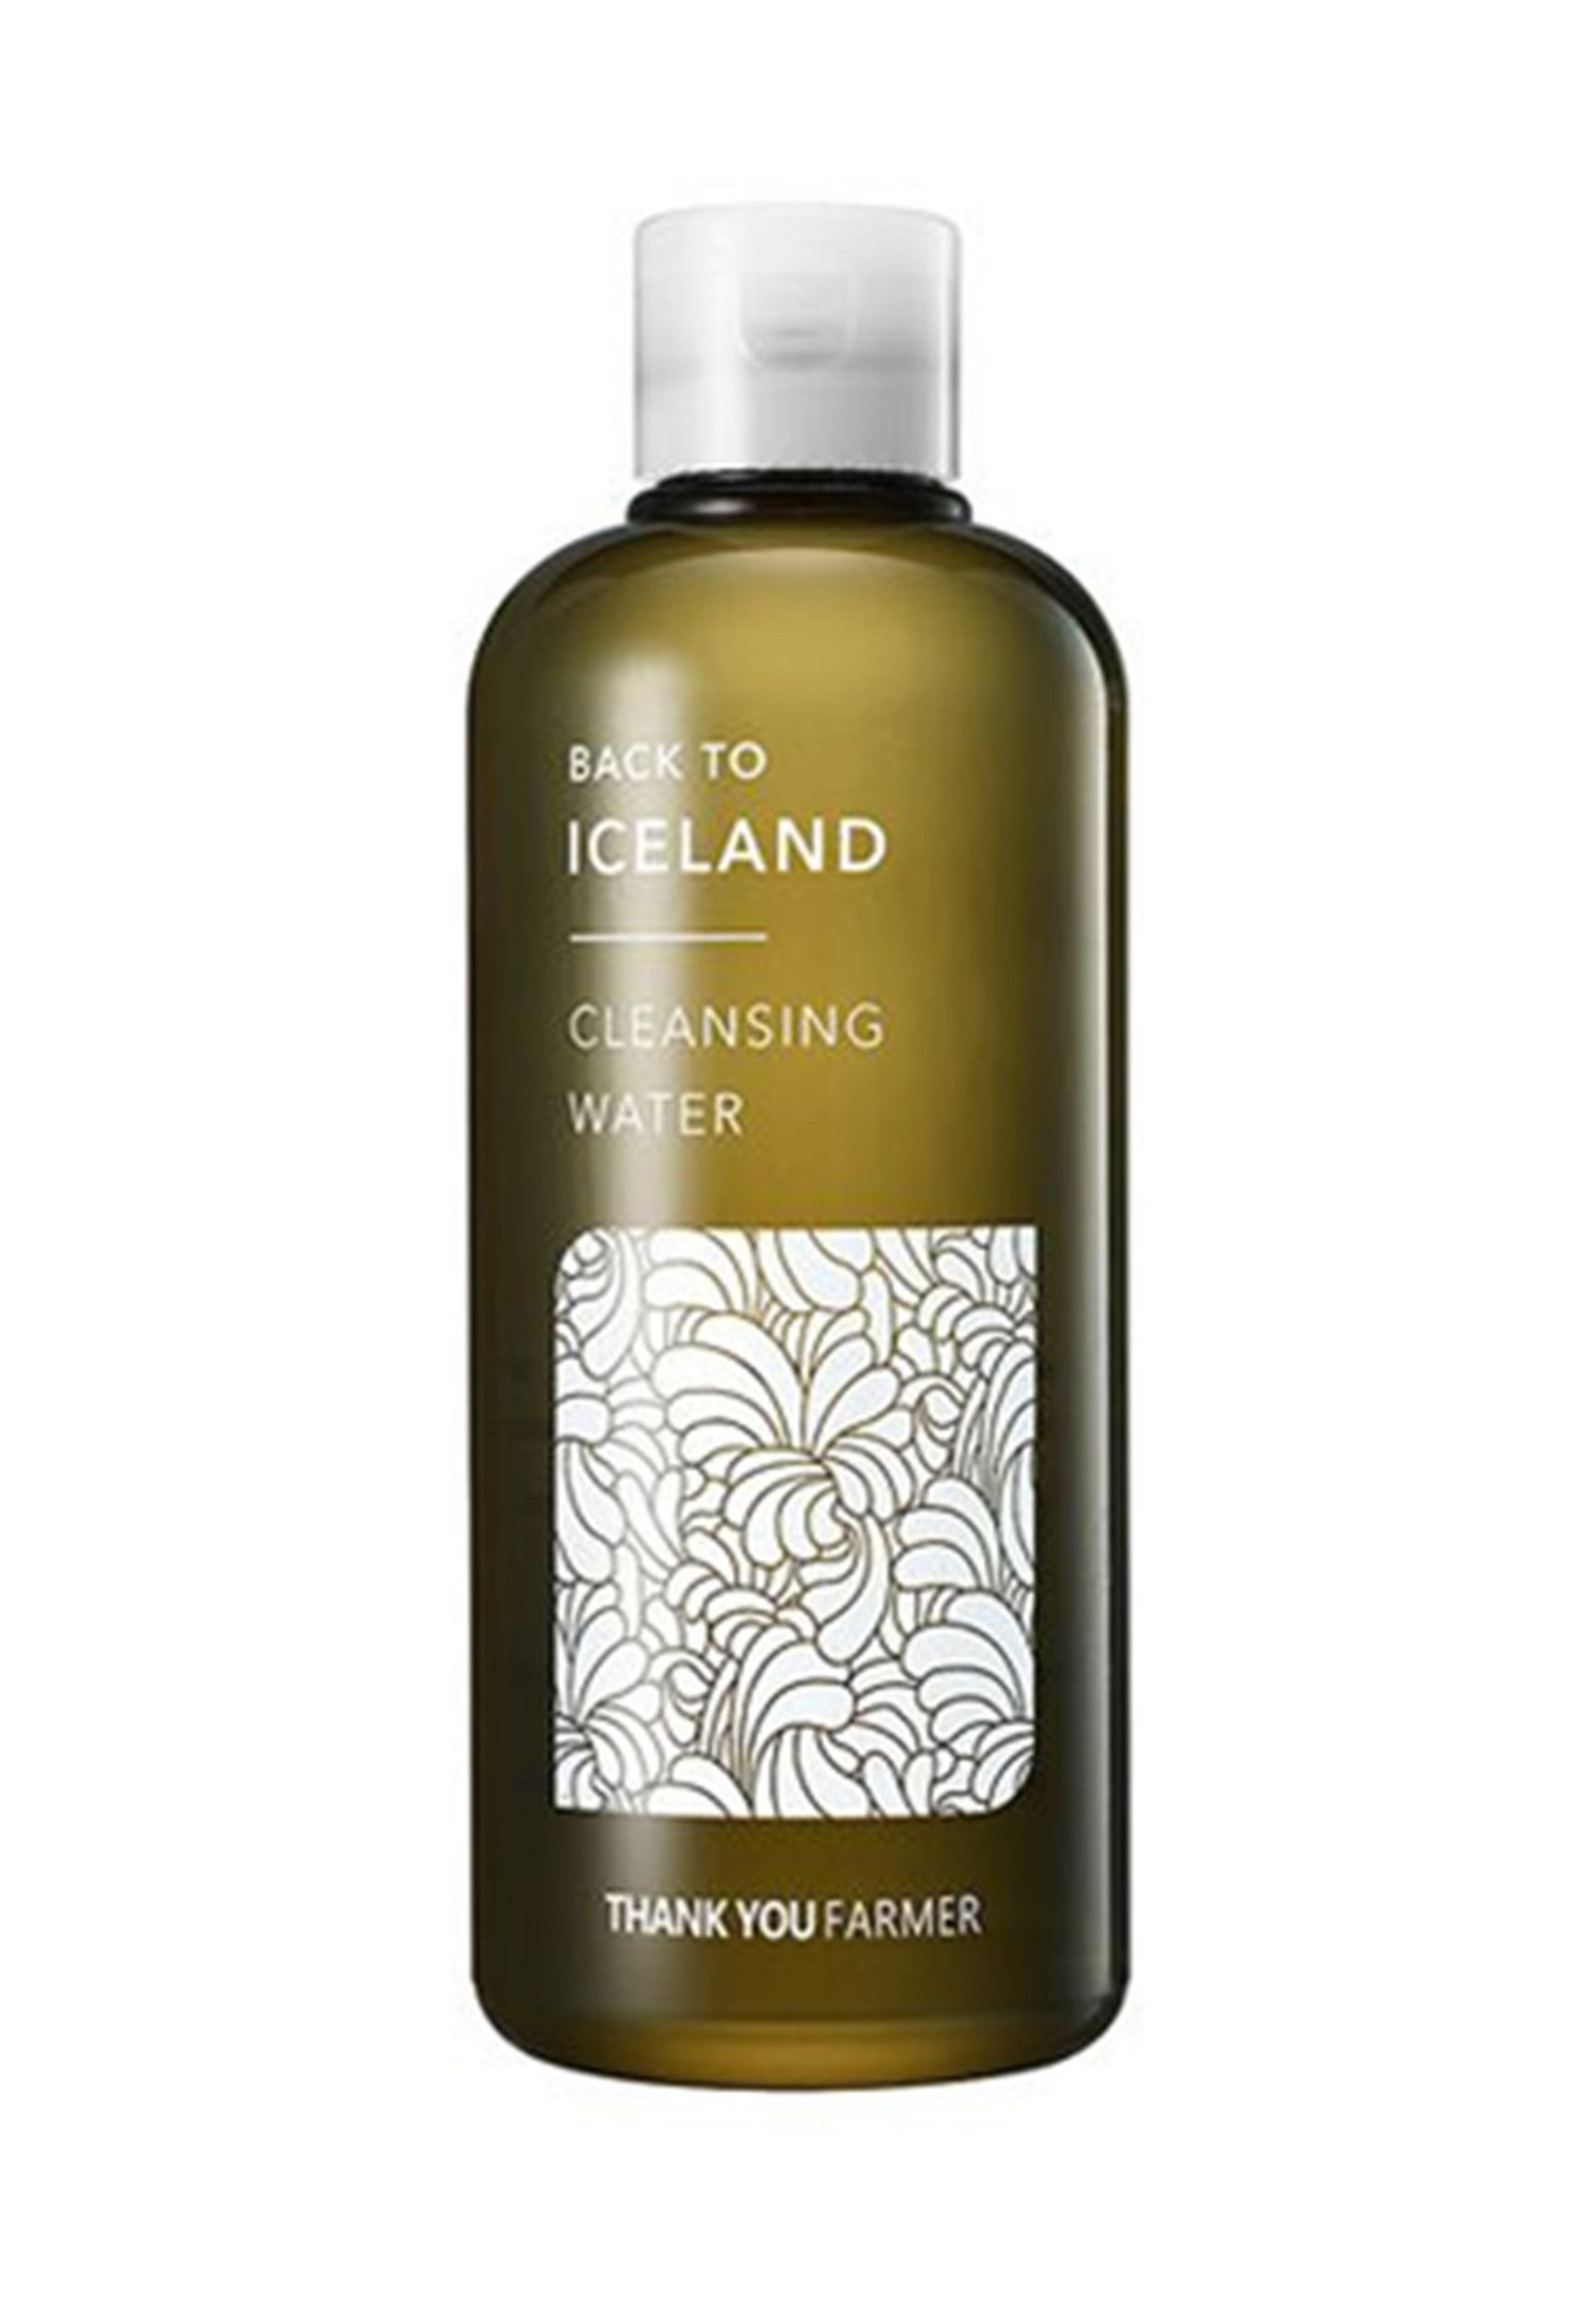 THANK YOU FARMERBack to Iceland Cleansing Water 260 ml,For WomenKBeauty